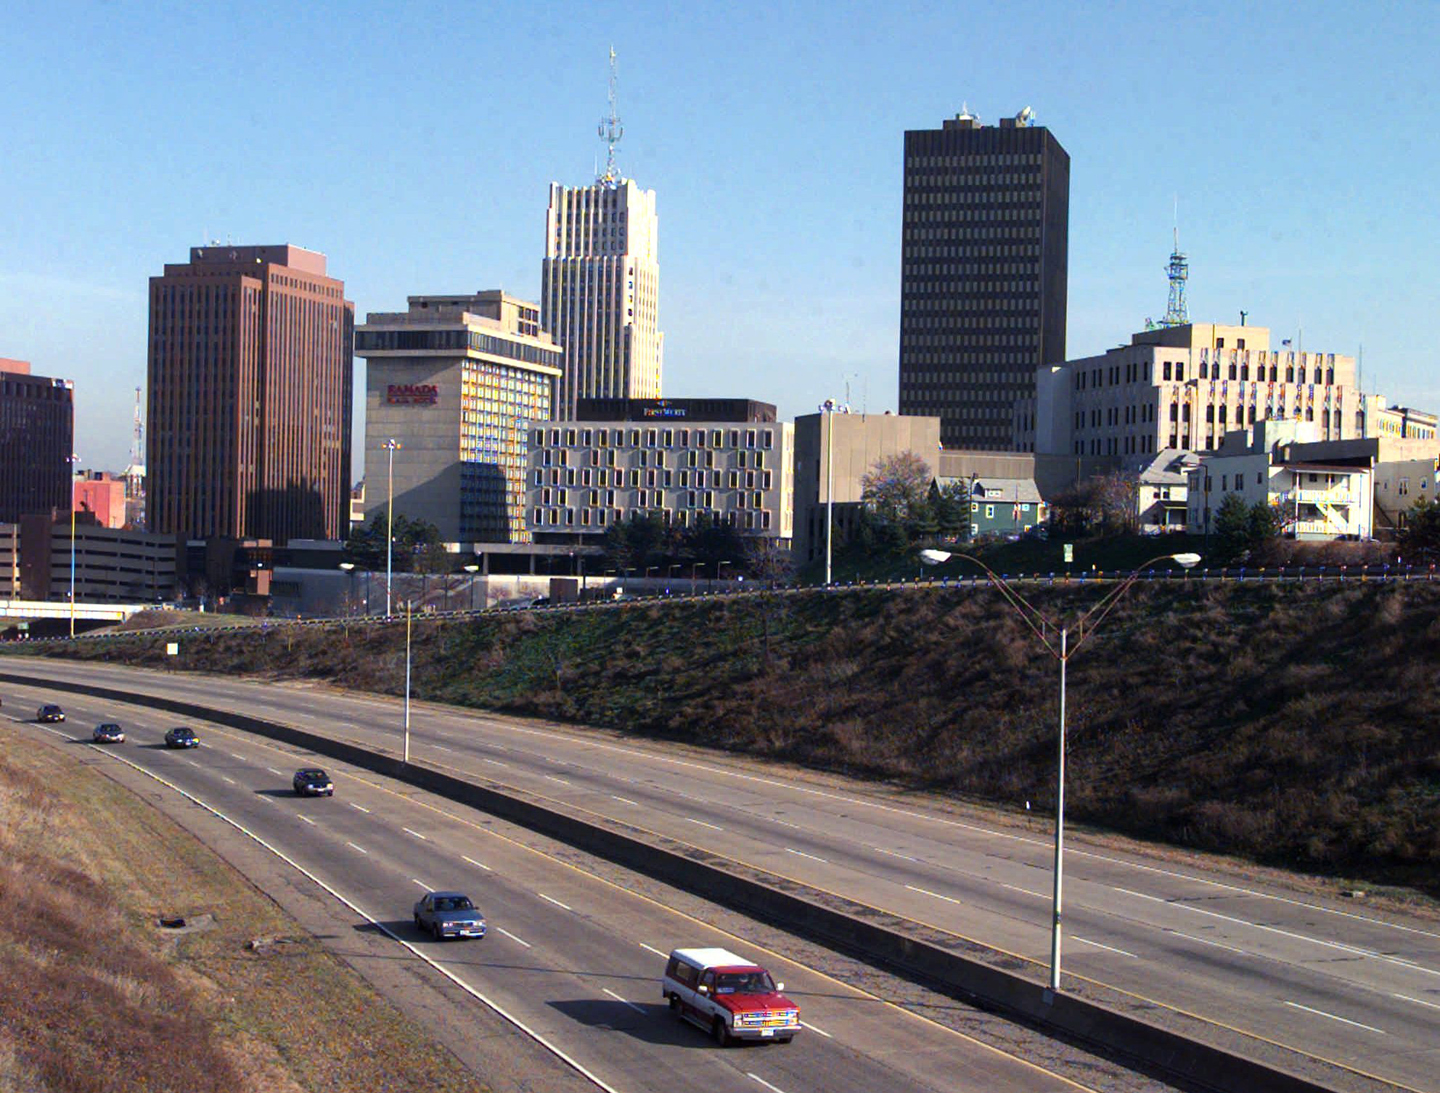 Downtown Akron, Ohio, shown in this Nov. 20, 1997, photo, will receive a visit from President Clinton on Dec. 3. The White House selected Akron for the first town meeting of the president's race initiative because Clinton wanted a Midwest city where whites have been active in programs to promote racial harmony. (AP Photo/Mark Duncan)